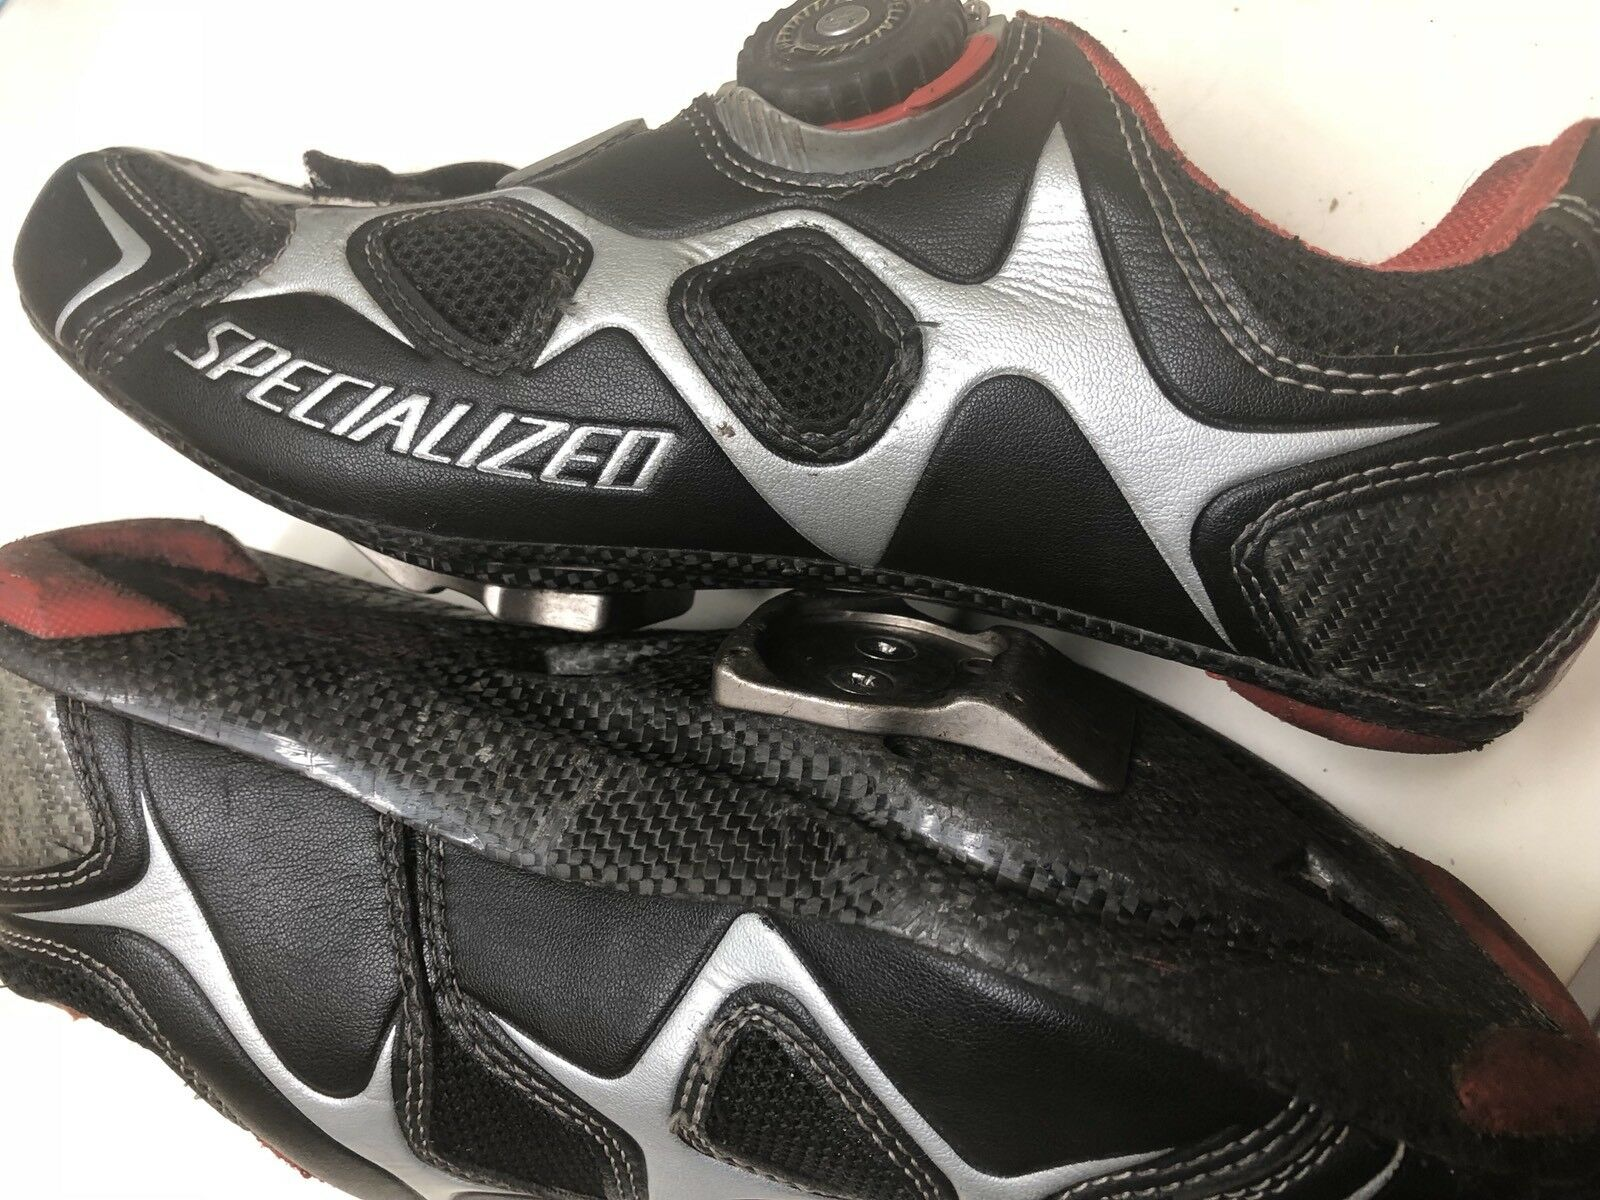 Specialized S Works shoes Body geometry Carbon 8.5 41.5 2 or 3 Bolt Very Light